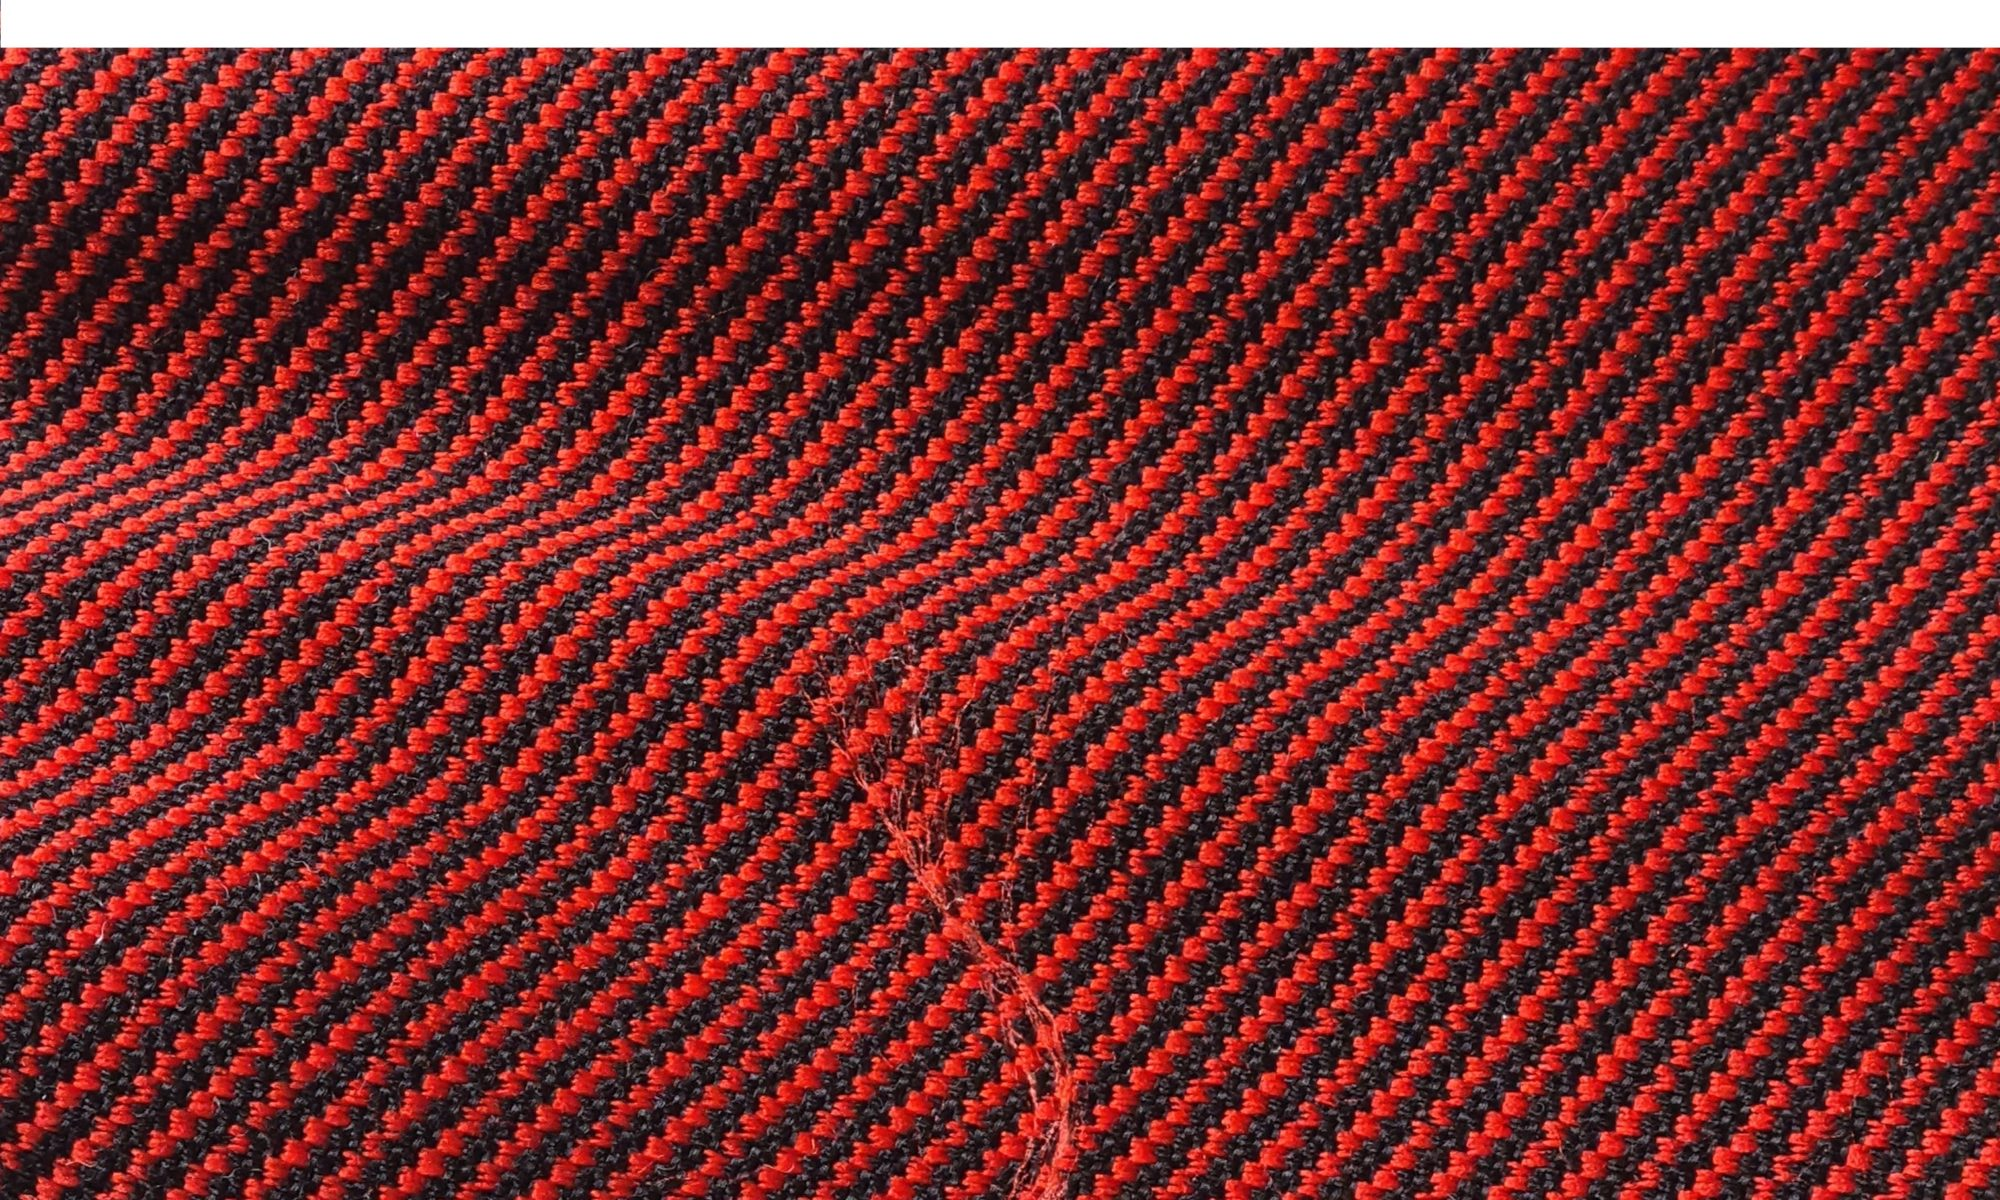 7570 red and black drill jacket fabric WIDTH cm137 WEIGHT gr460 - gr335 square meter - COMPOSITION 59 wool 41 polyester - 650mts